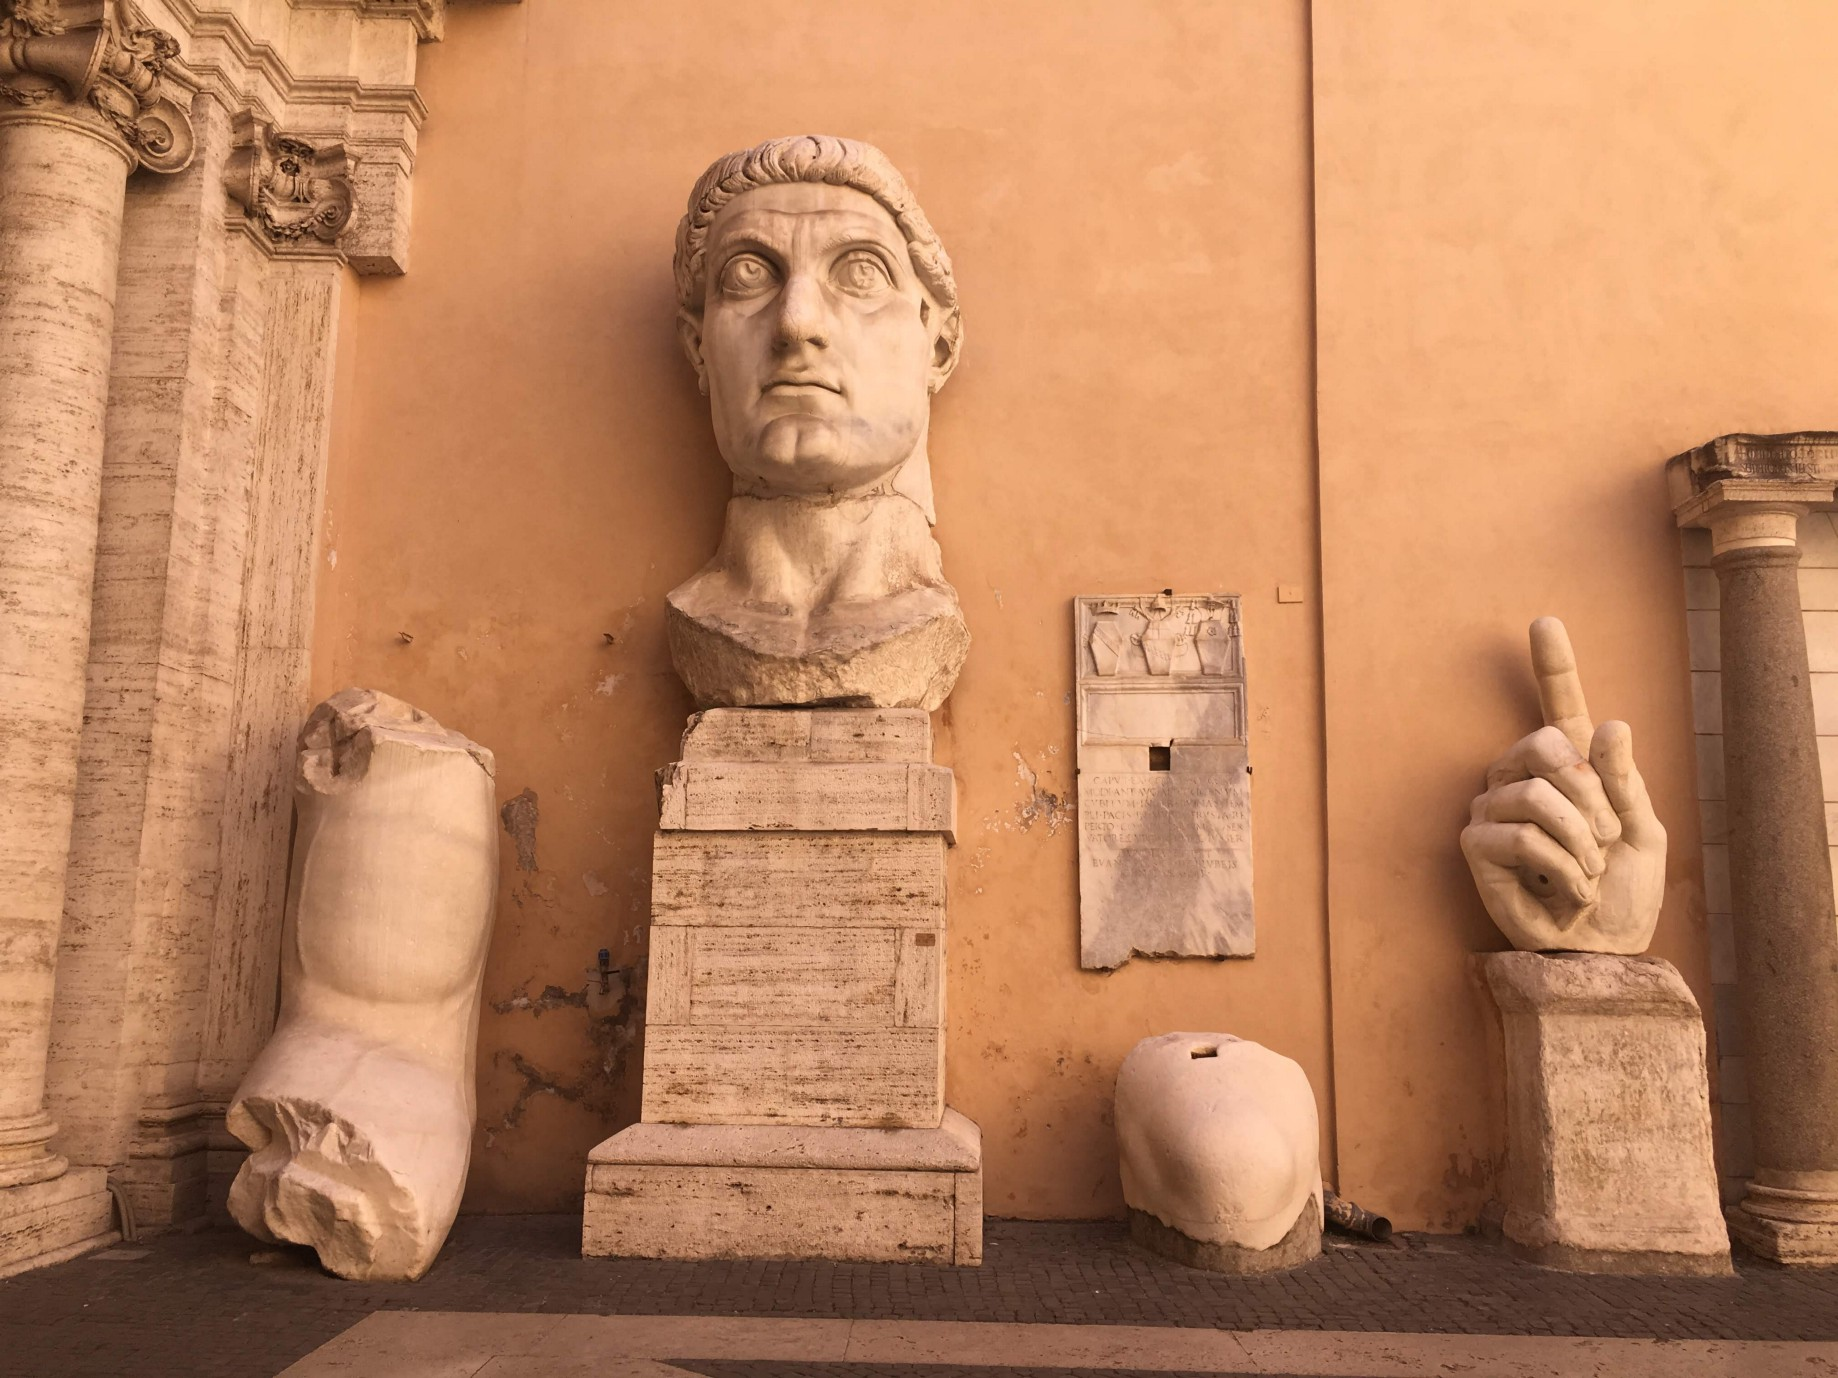 A Beginner's Guide to Getting Into Ancient Rome - Mackenzie Patel